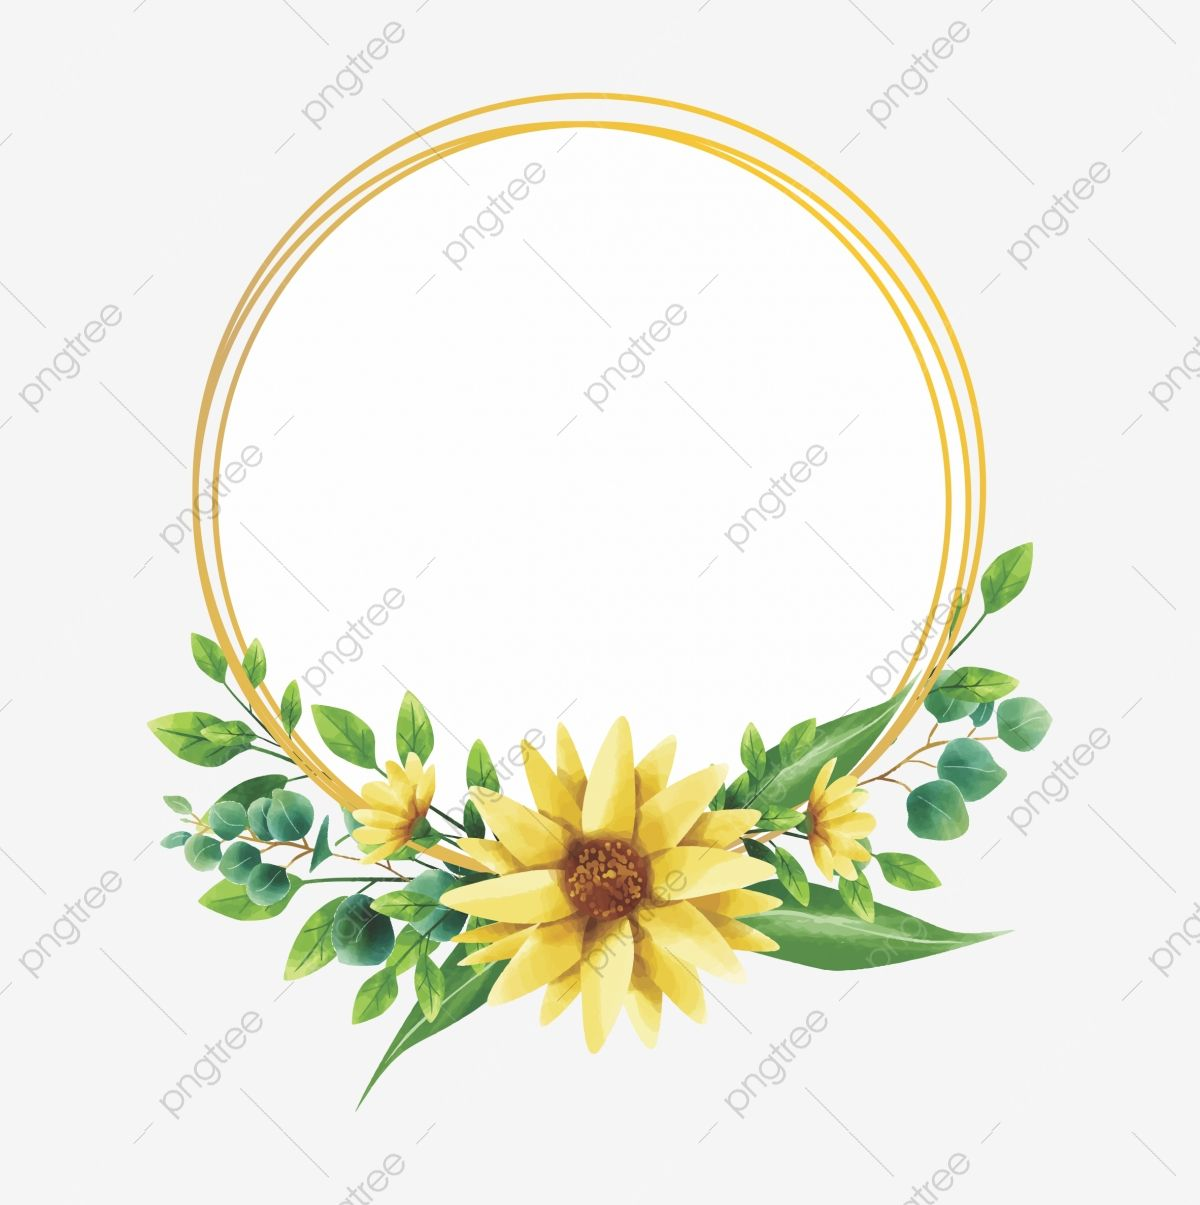 Yellow Flower Frame With Watercolor Style Watercolor Flower Floral Png And Vector With Transparent Background For Free Download Flower Frame Flower Frame Png Watercolor Flower Background